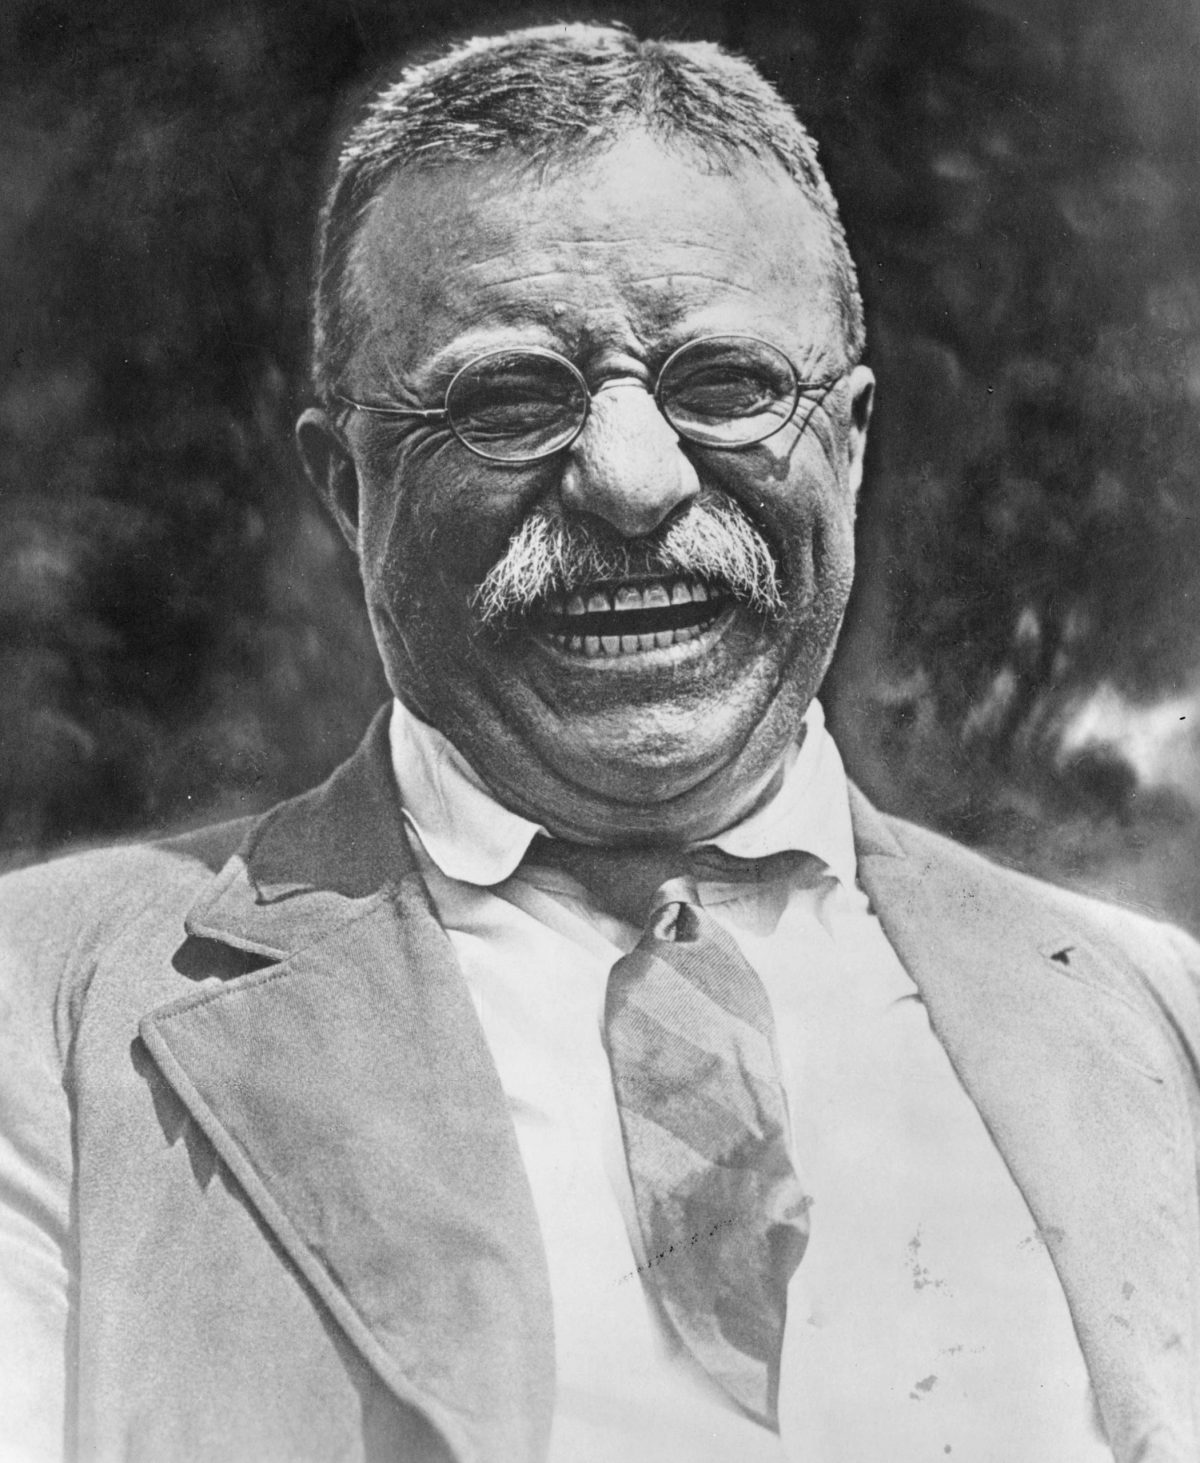 """Teddy Roosevelt, 26th president of the United States, had a straightforward diplomatic prescription — """"Speak softly and carry a big stick."""" It's early days, but the Trump administration appears willing to use the stick. Photo: Wikipedia Commons"""